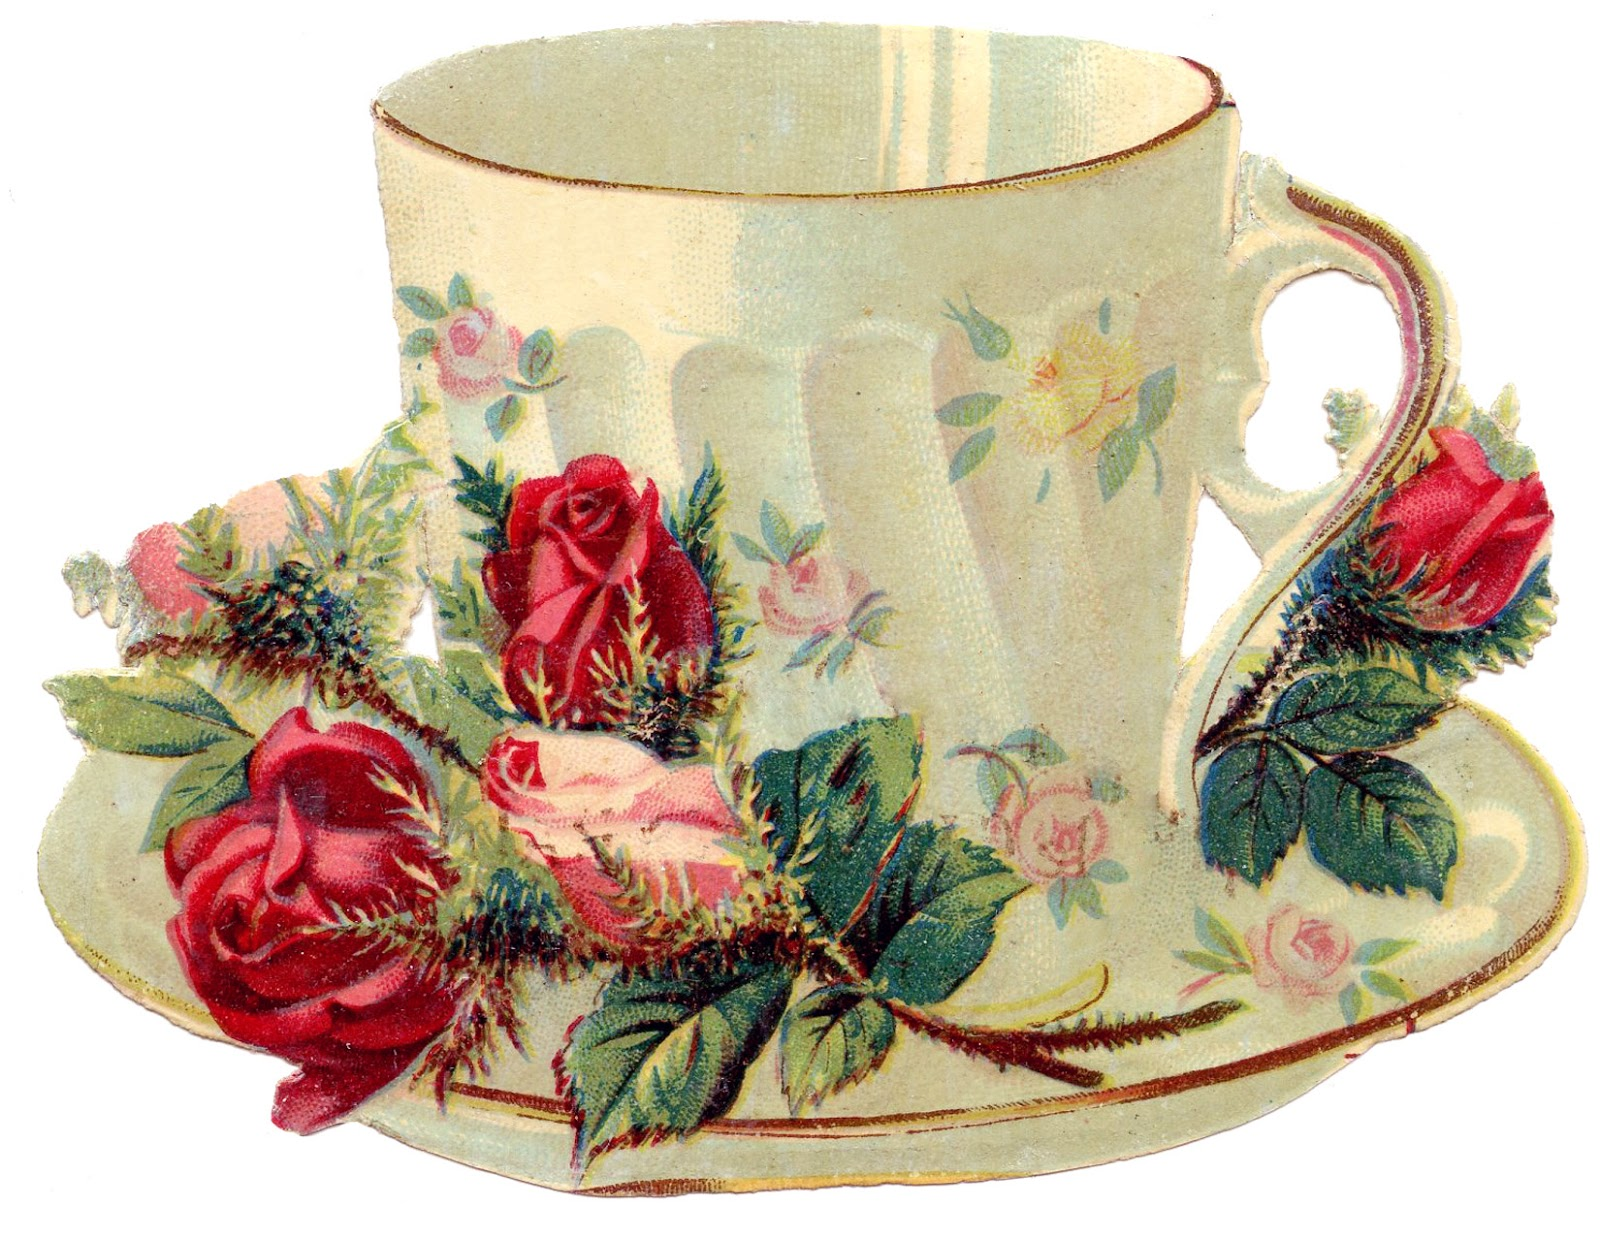 Free Vintage Images   Teacup With Roses   French   The Graphics Fairy